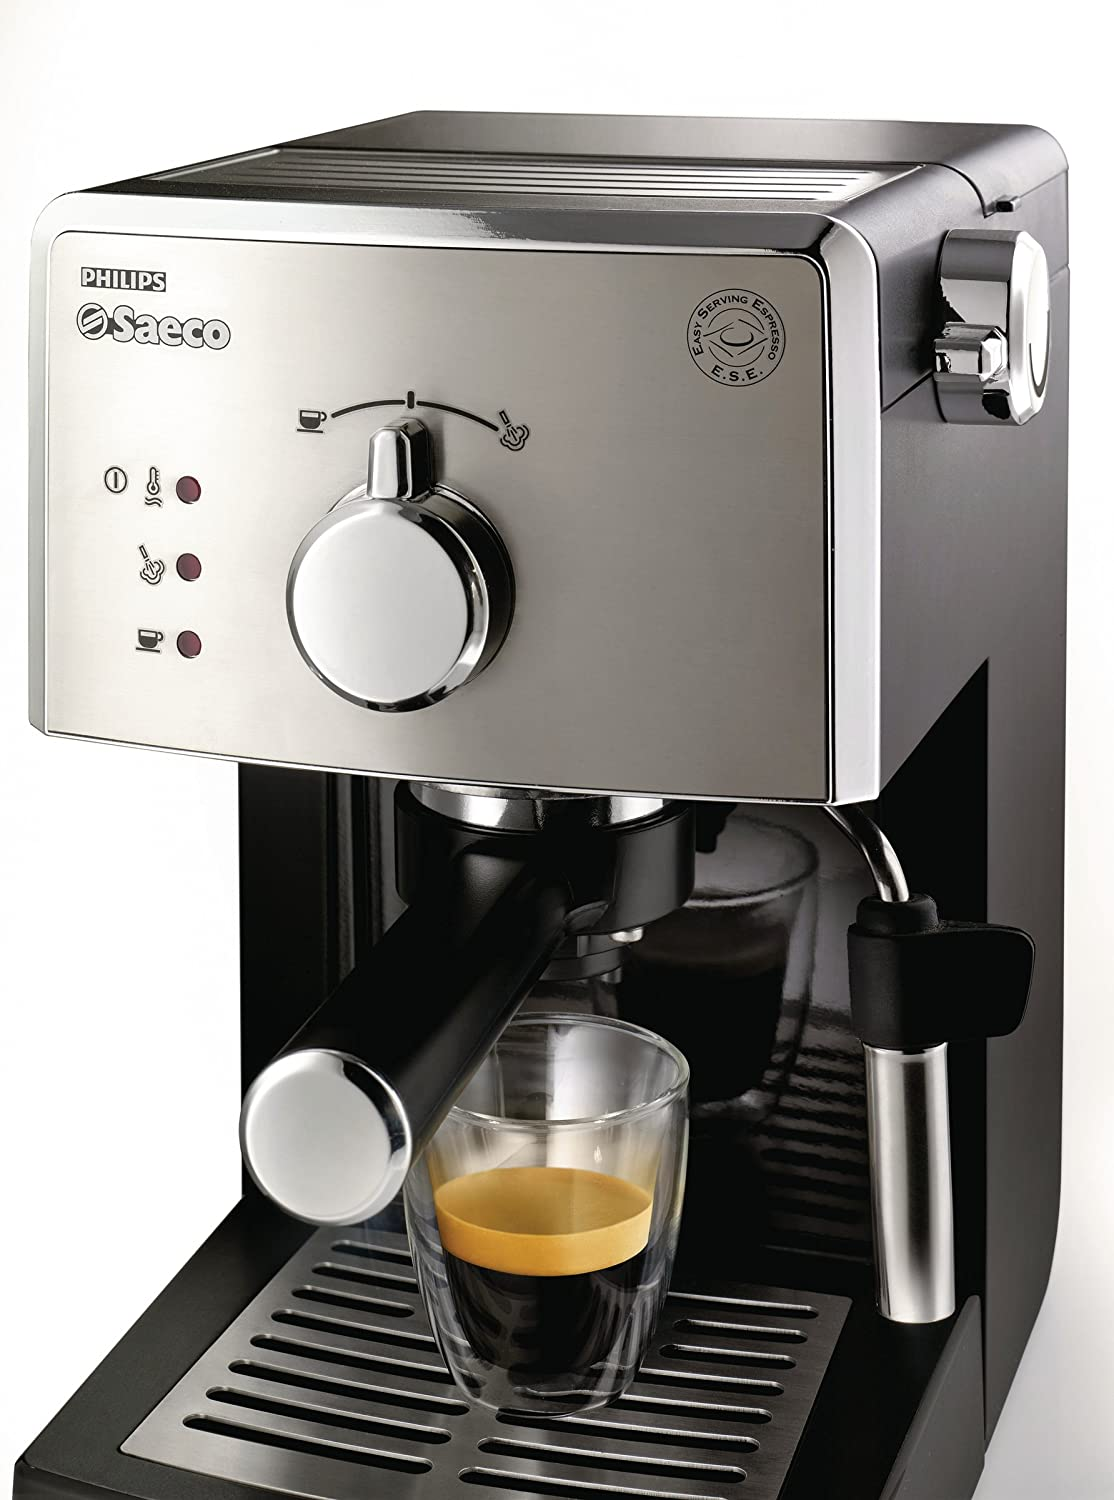 Electronic Saeco Coffee Machine Manual buy philips saeco poemia hd8325 1 litre manual espresso machine online at low prices in india amazon in